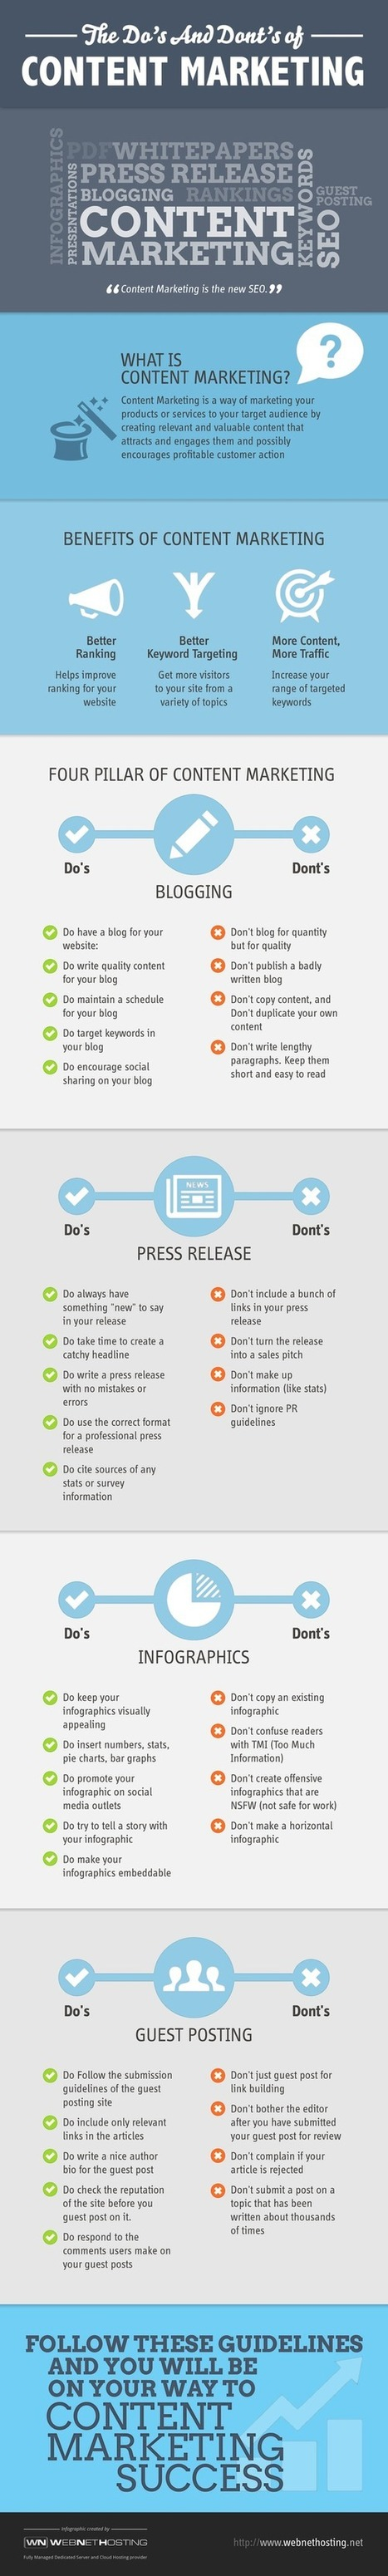 The Do's and Dont's of Content Marketing - Infographic | H&H Social Design Surroundings | Scoop.it